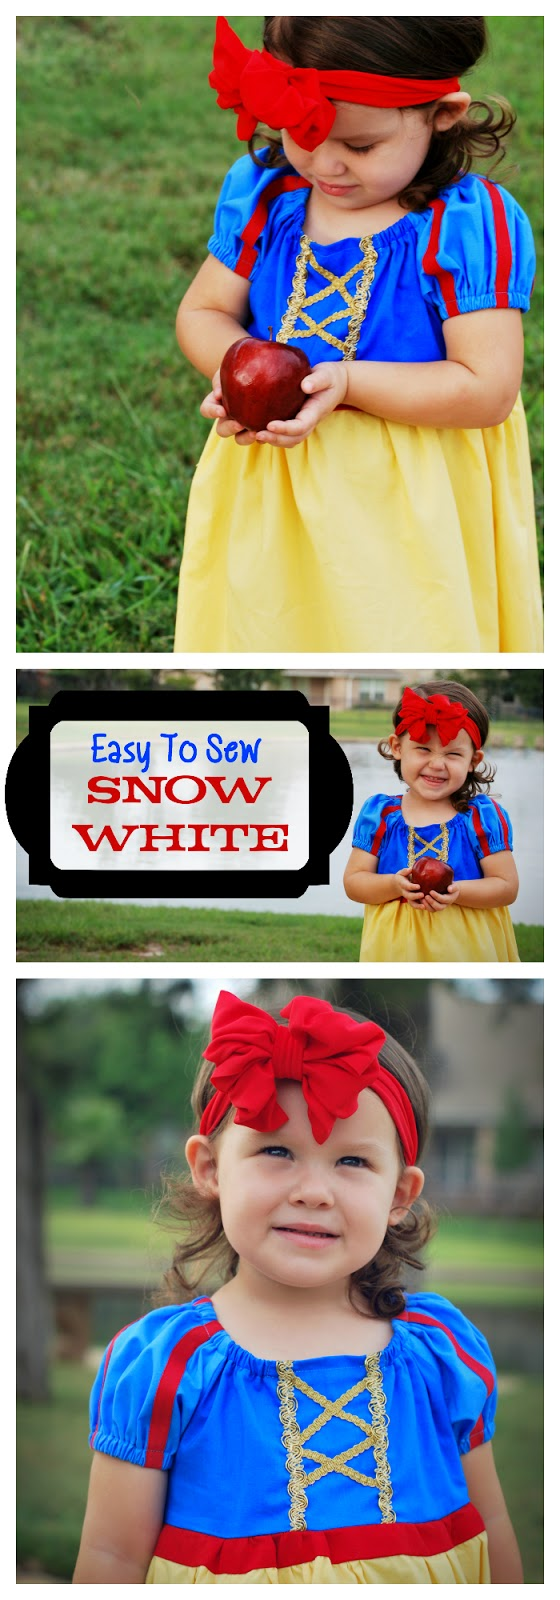 Easy To Sew Snow White Peasant Dress For Halloween or Dress Up  sc 1 st  Major Hoff Takes A Wife & Easy To Sew Snow White Peasant Dress For Halloween or Dress Up ...